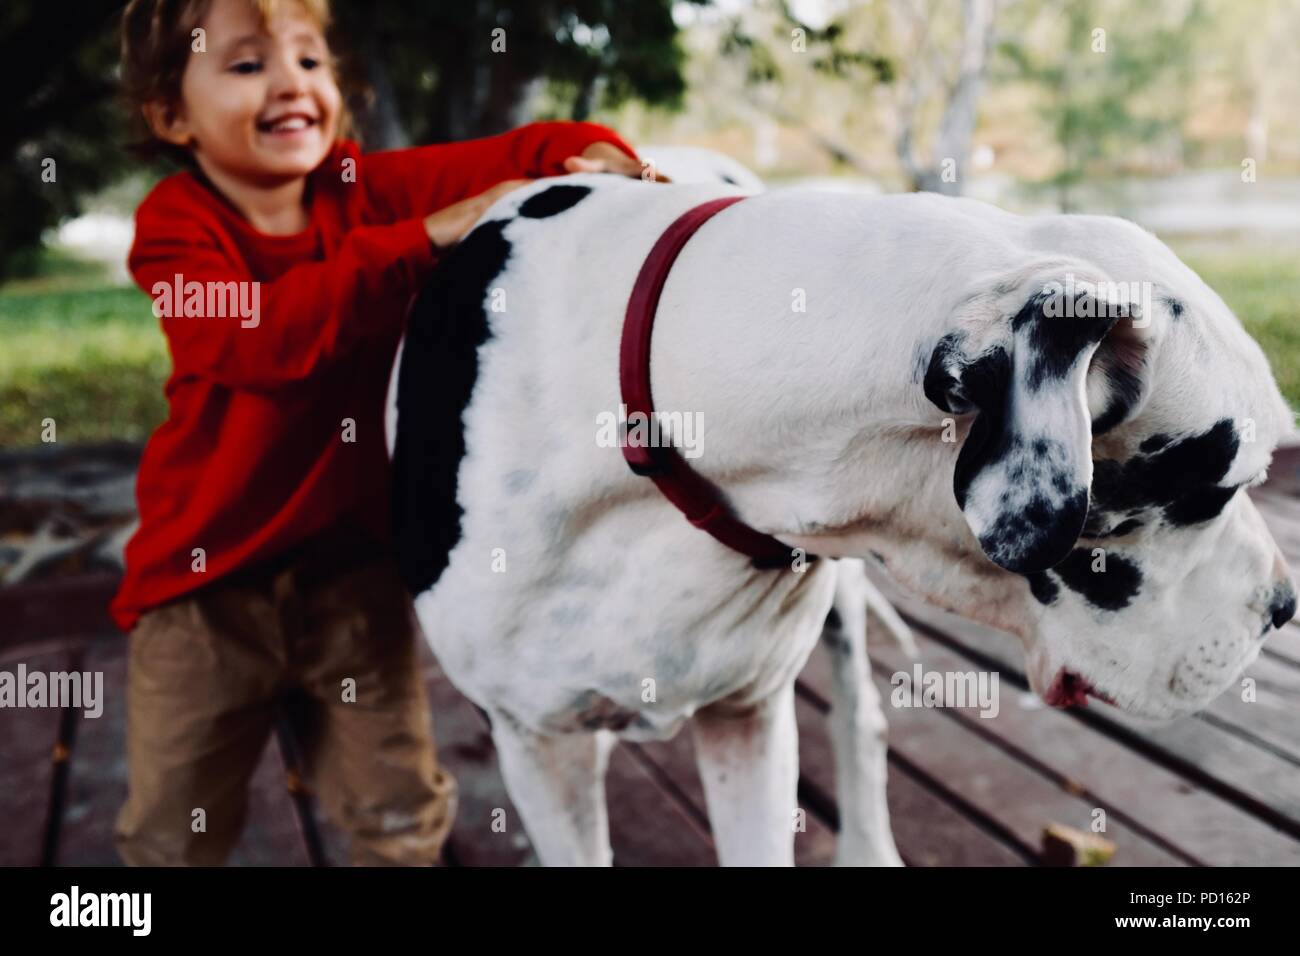 A young girl cuddles and smiles with a white and black great dane dog, Booroona walking trail on the Ross River, Rasmussen QLD 4815, Australia - Stock Image